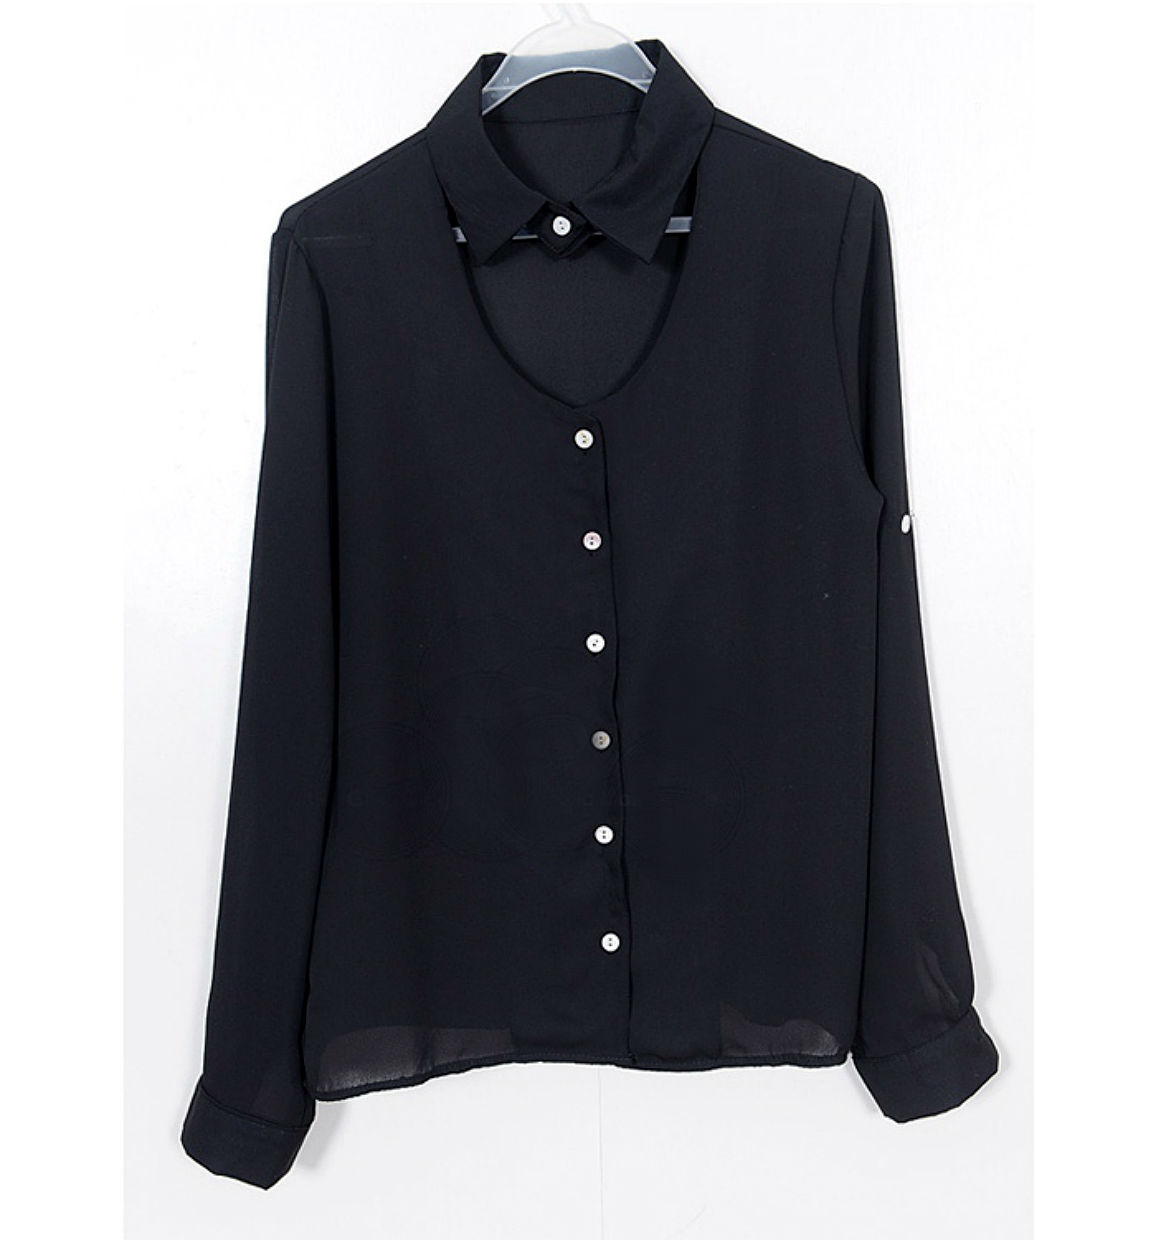 Women 39 s white blouse with black collar mexican blouse for White shirt with black